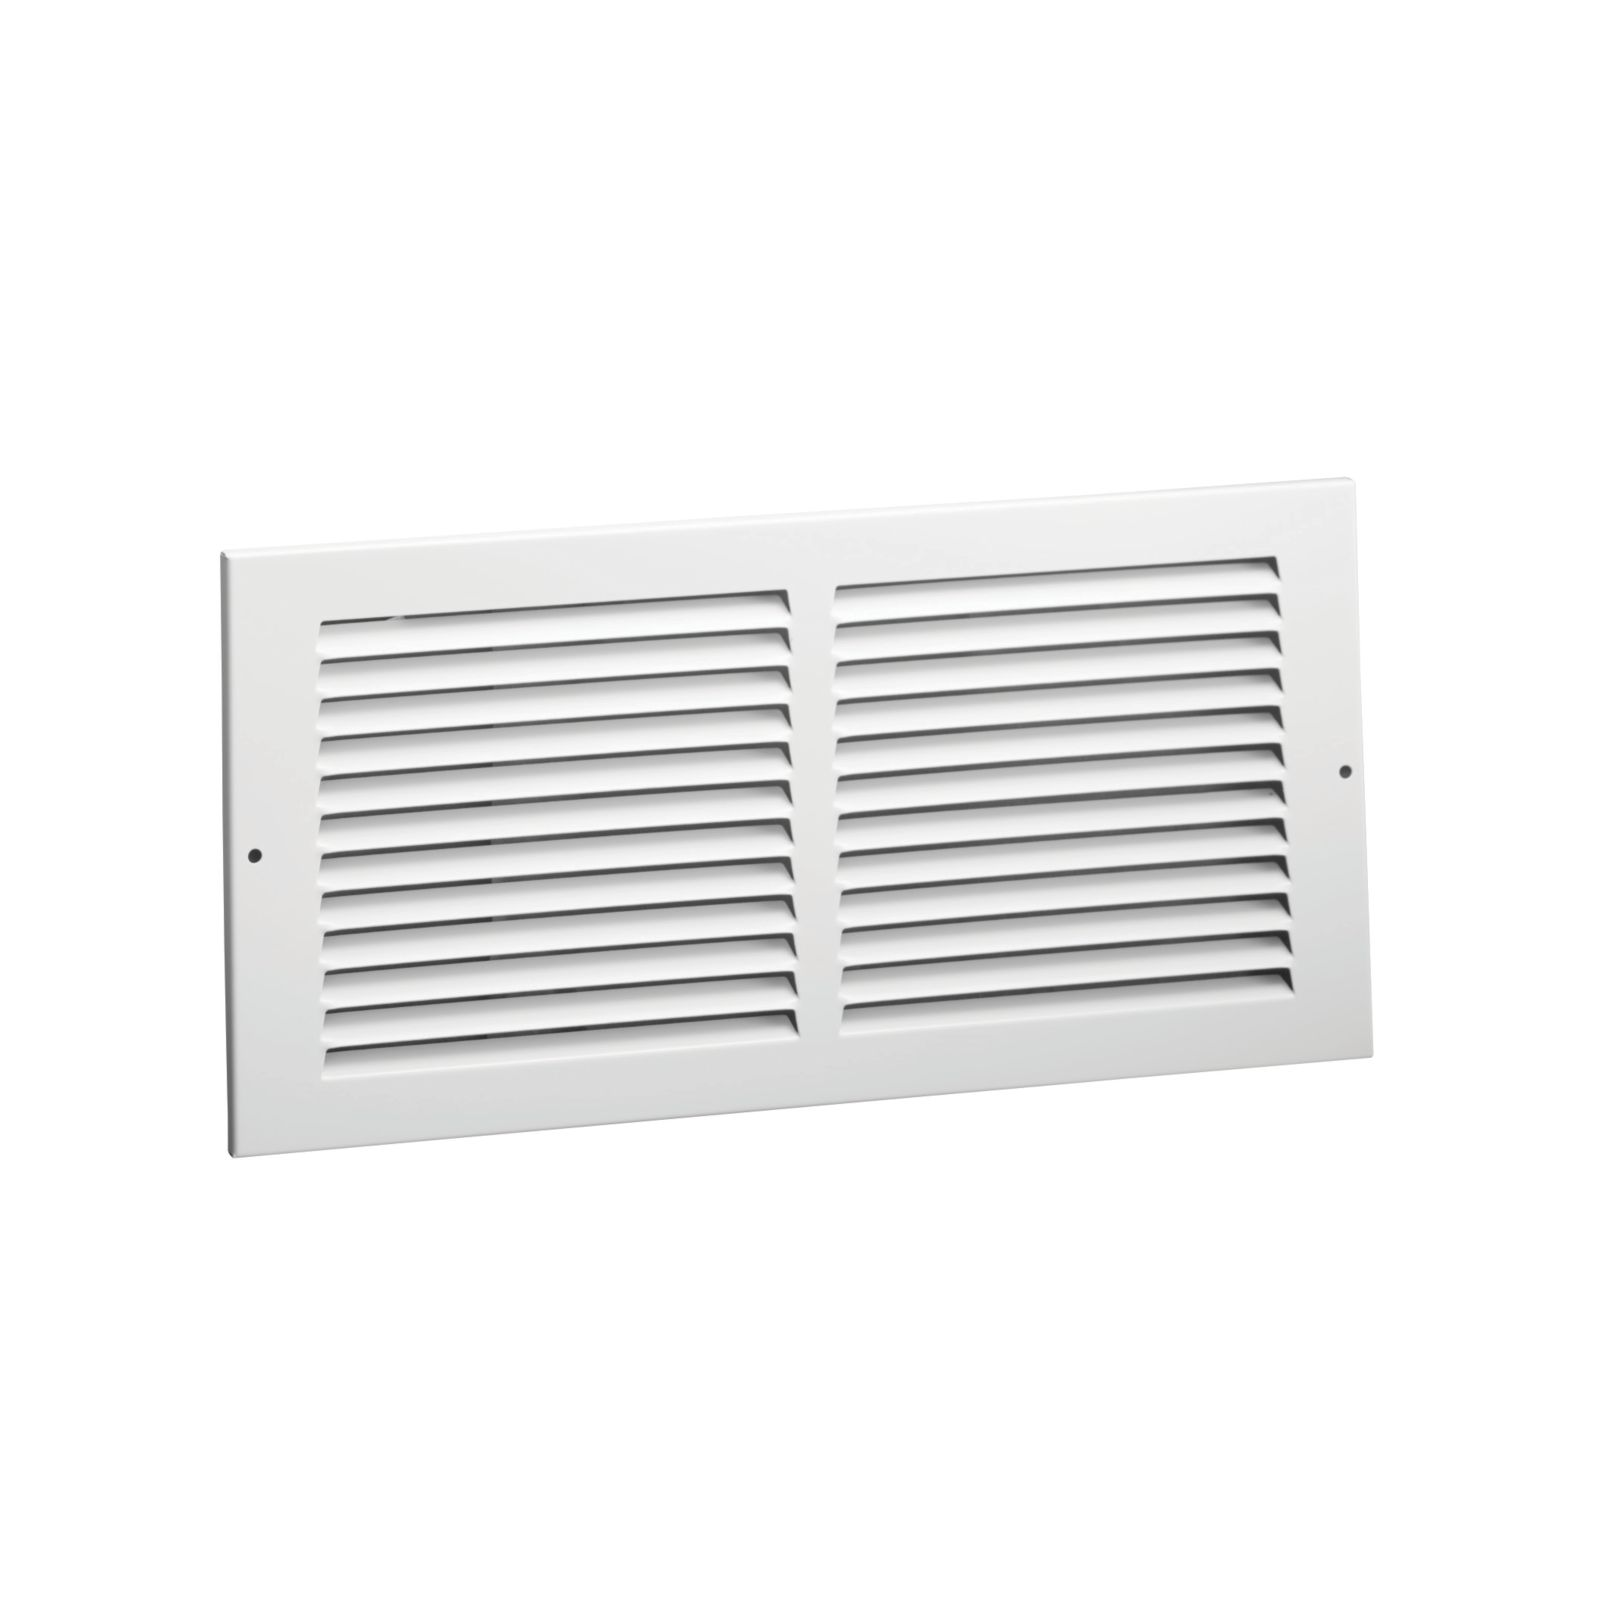 "Hart & Cooley 043351 - #672 Steel Return Air Grille, White Finish, 20"" X 8"""